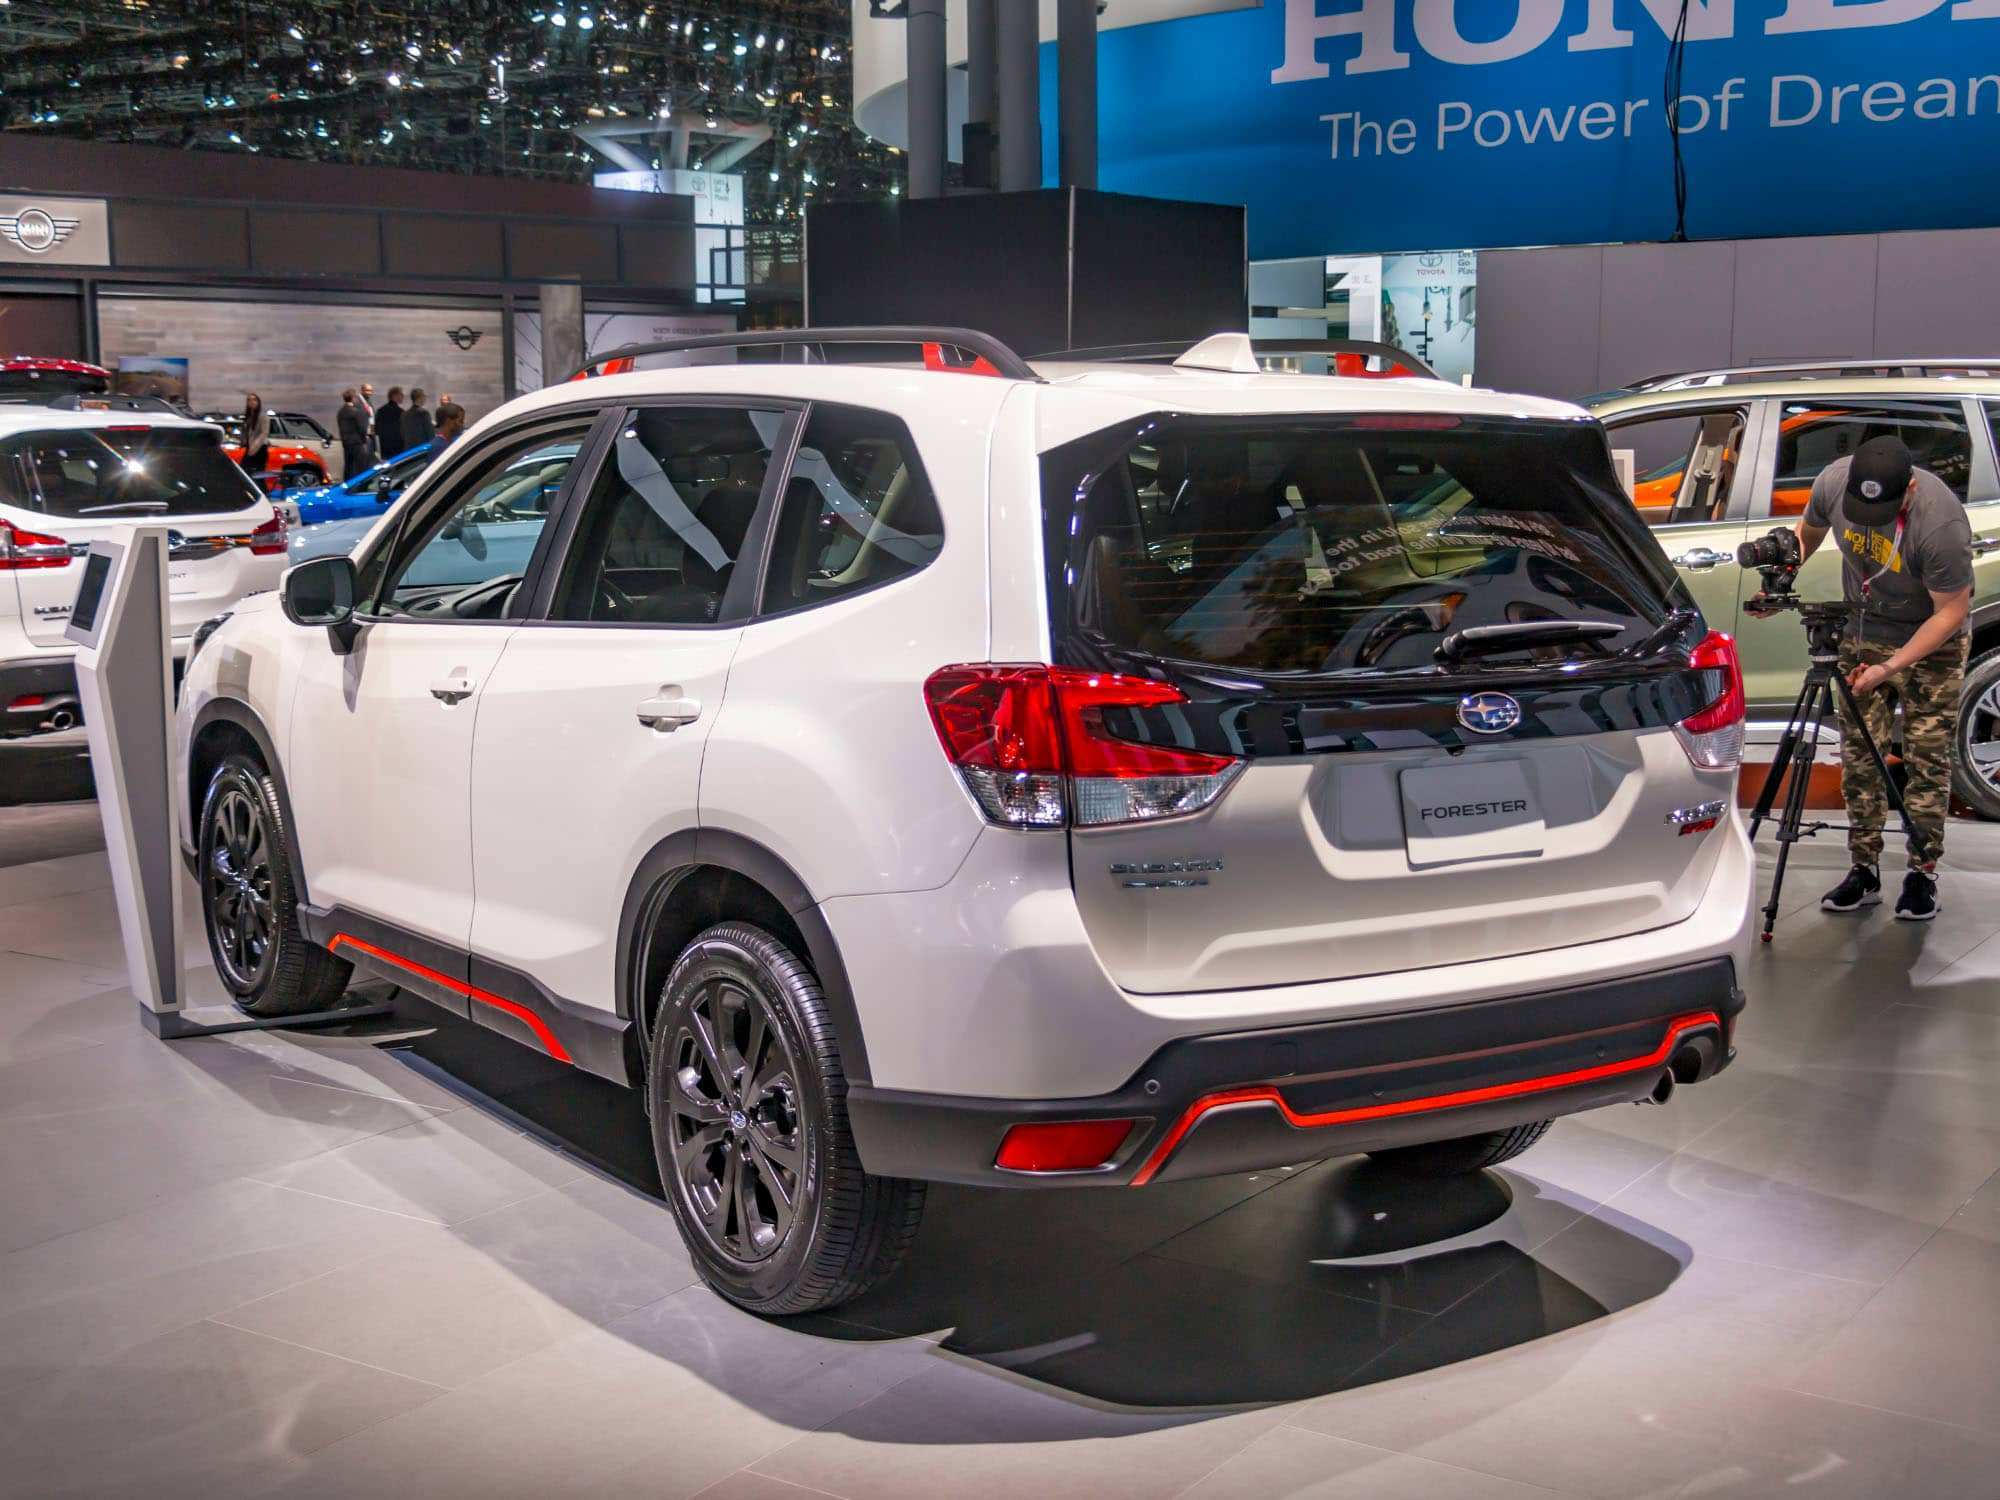 71 New Dimensions Of 2020 Subaru Forester Concept for Dimensions Of 2020 Subaru Forester